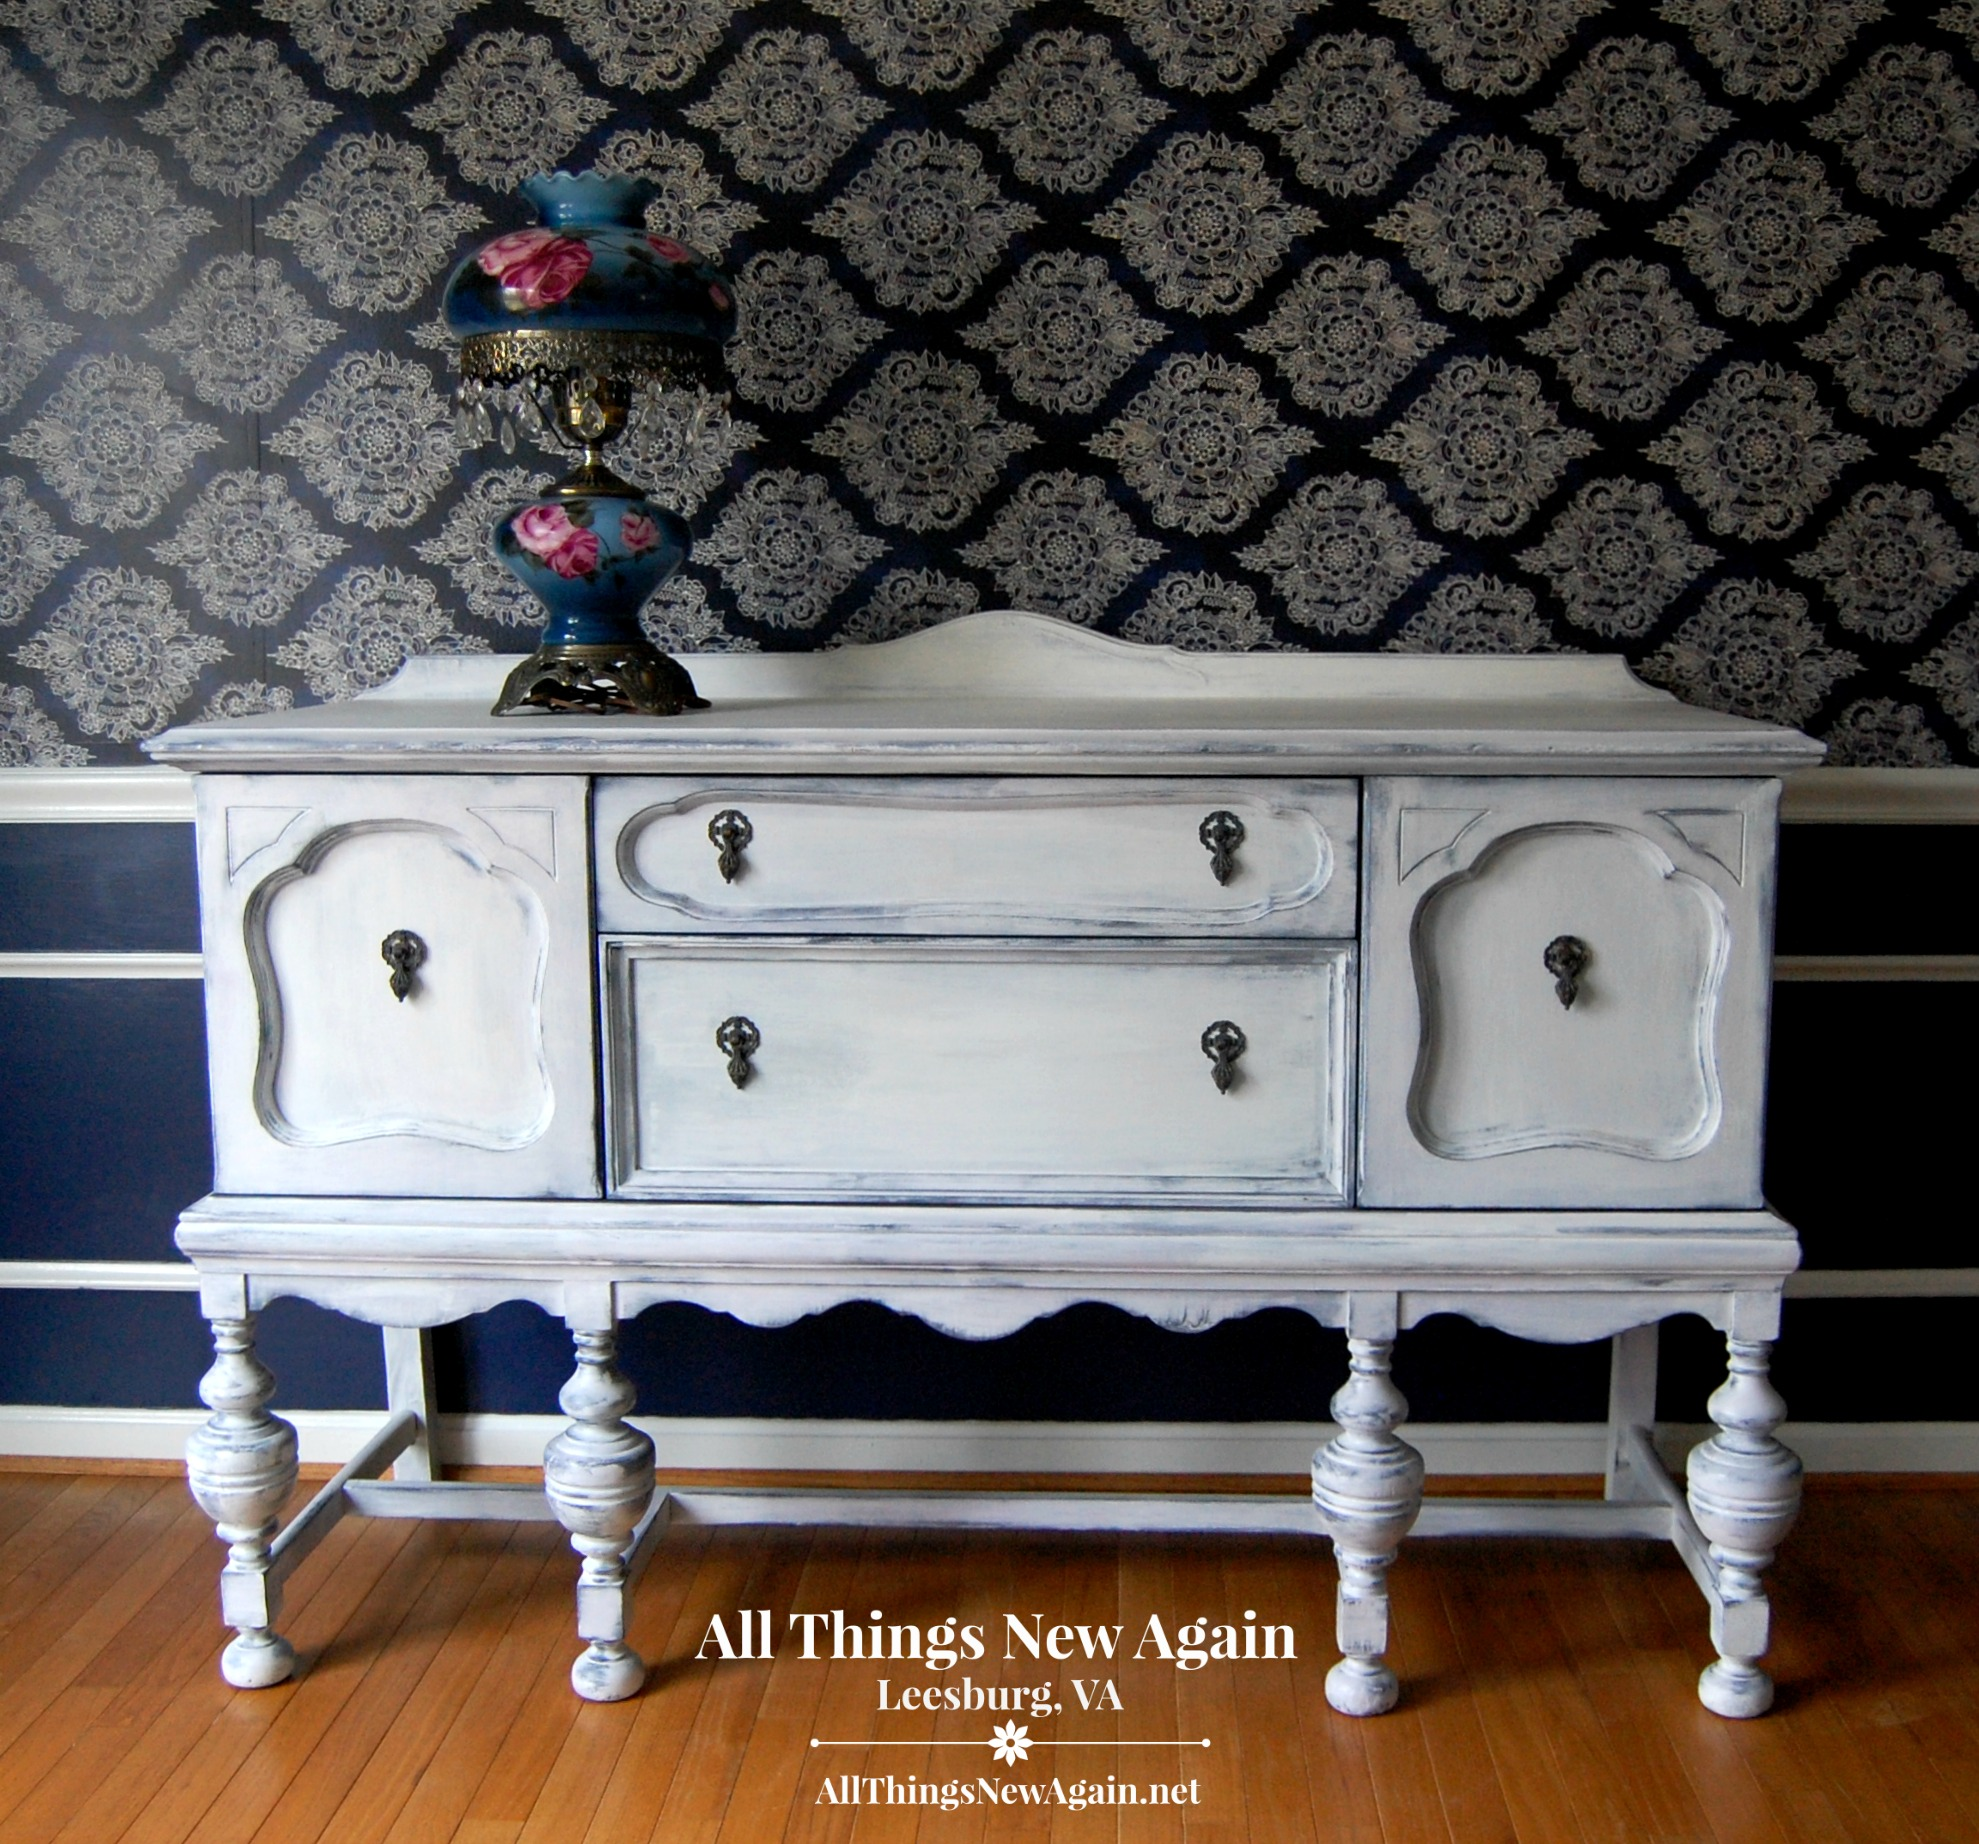 My Favorite Piece Of Furniture I Have Ever Painted. Ever!